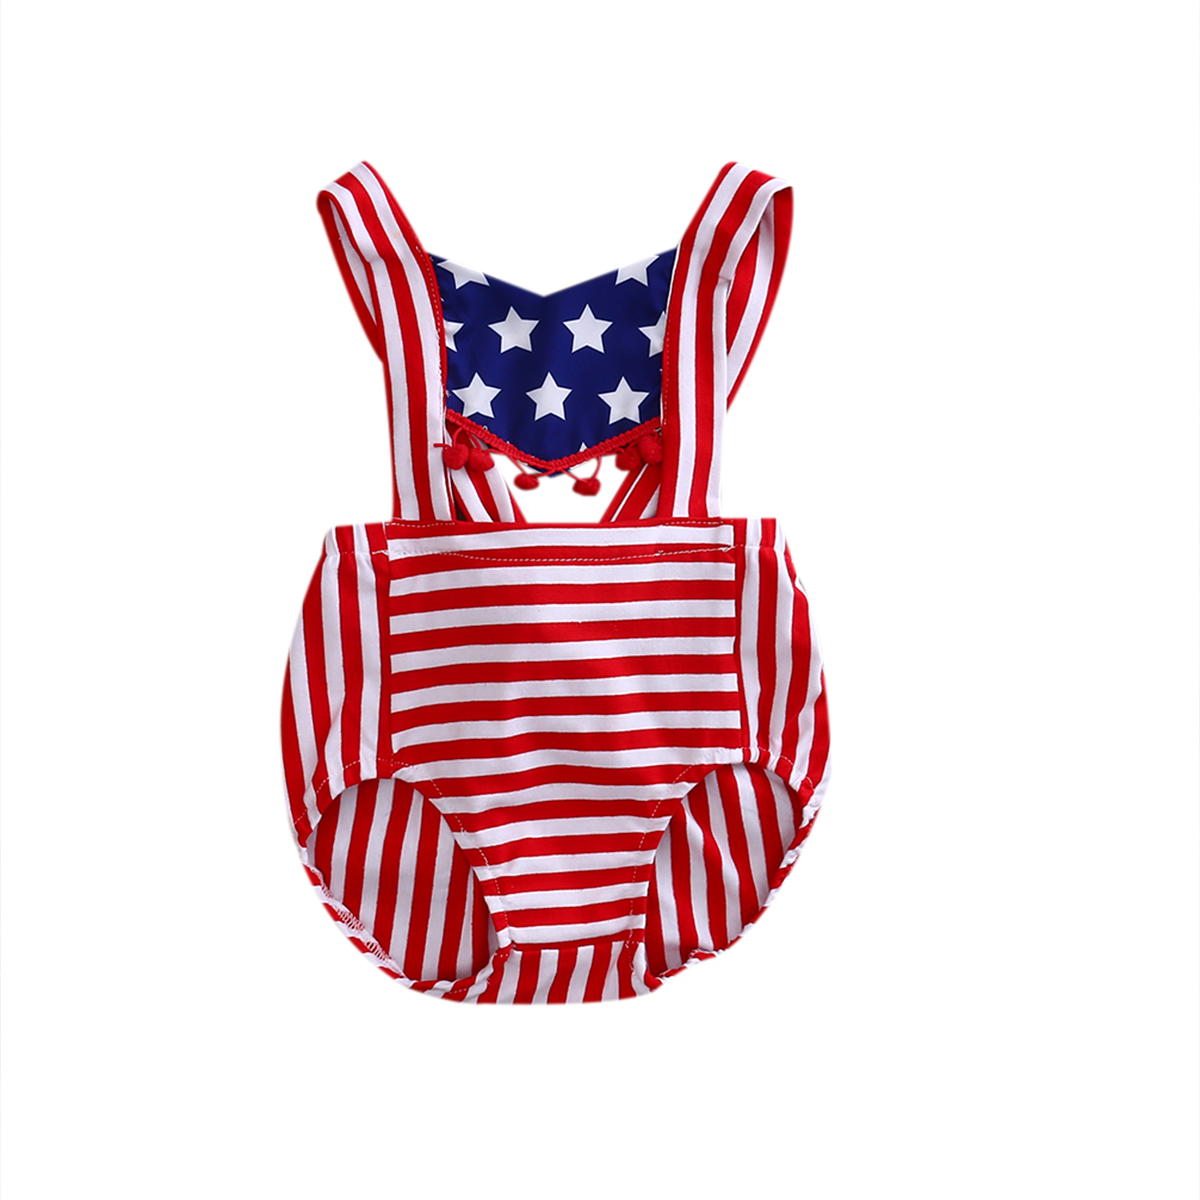 Summer Newborn Toddler Infant Baby Girl Romper Jumpsuit Striped Star Flag Outfit Sunsuit Clothes  -  Babywow Store store